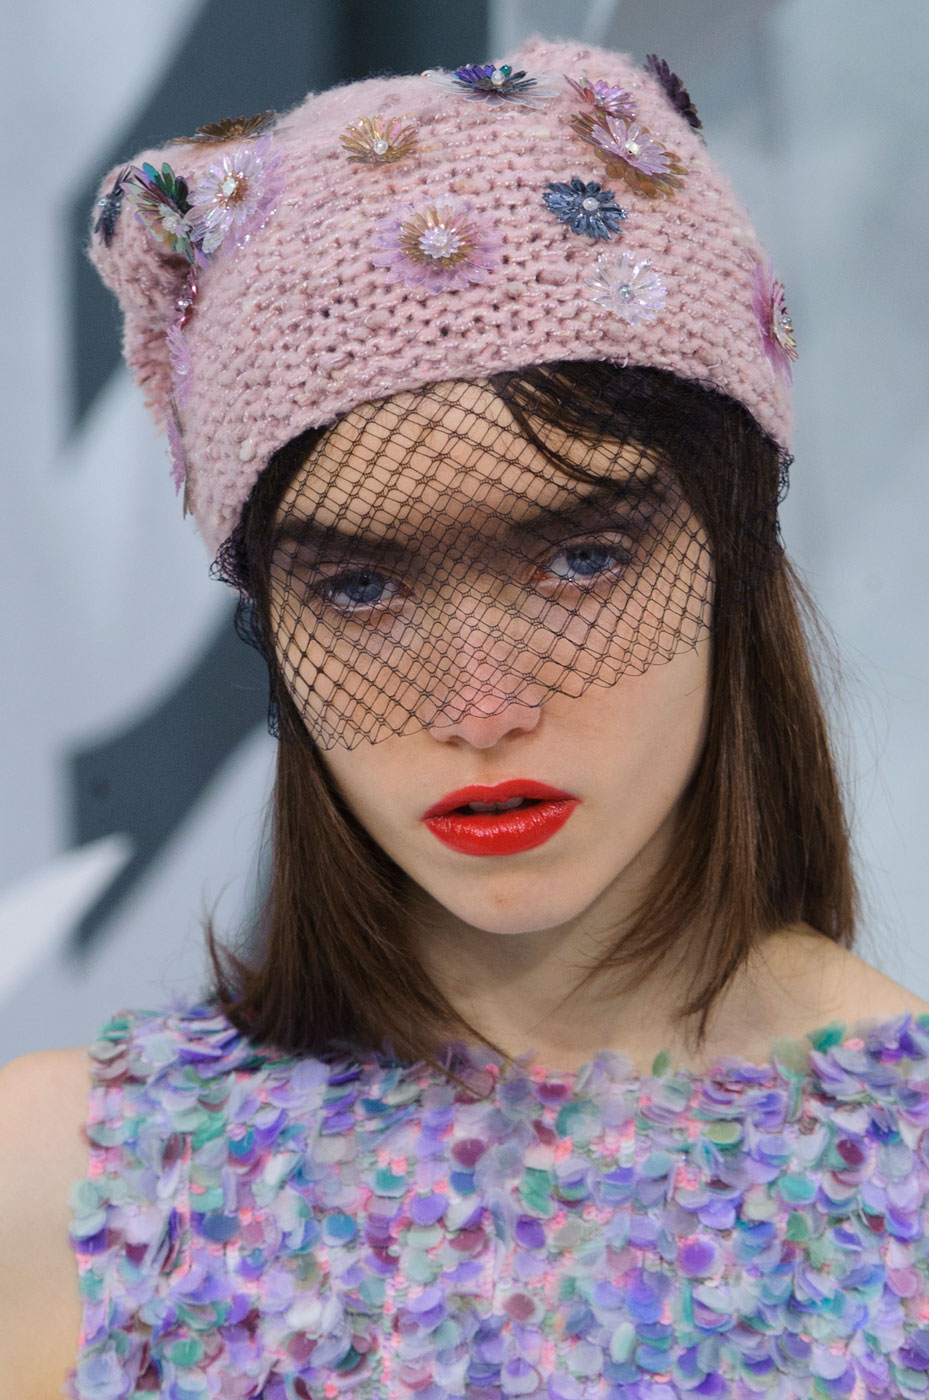 Chanel-fashion-runway-show-close-ups-haute-couture-paris-spring-summer-2015-the-impression-125